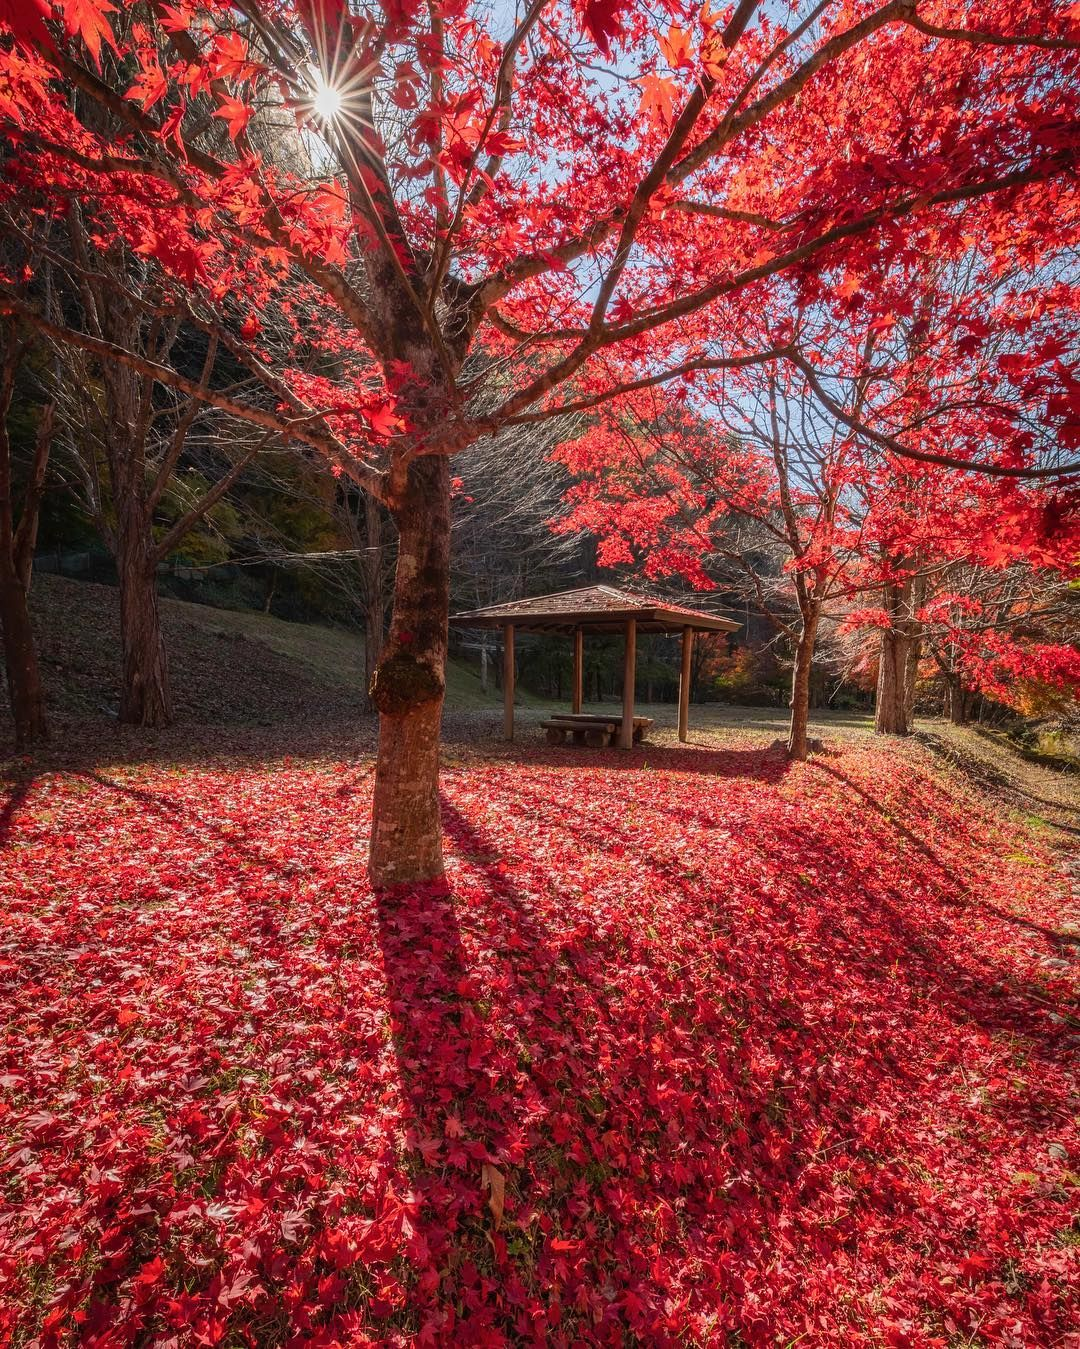 Colorful Autumn In Japan Landscape Photography By Daisuke Uematsu Landscape Photography Autumn Landscape Landscape Photography Tutorial